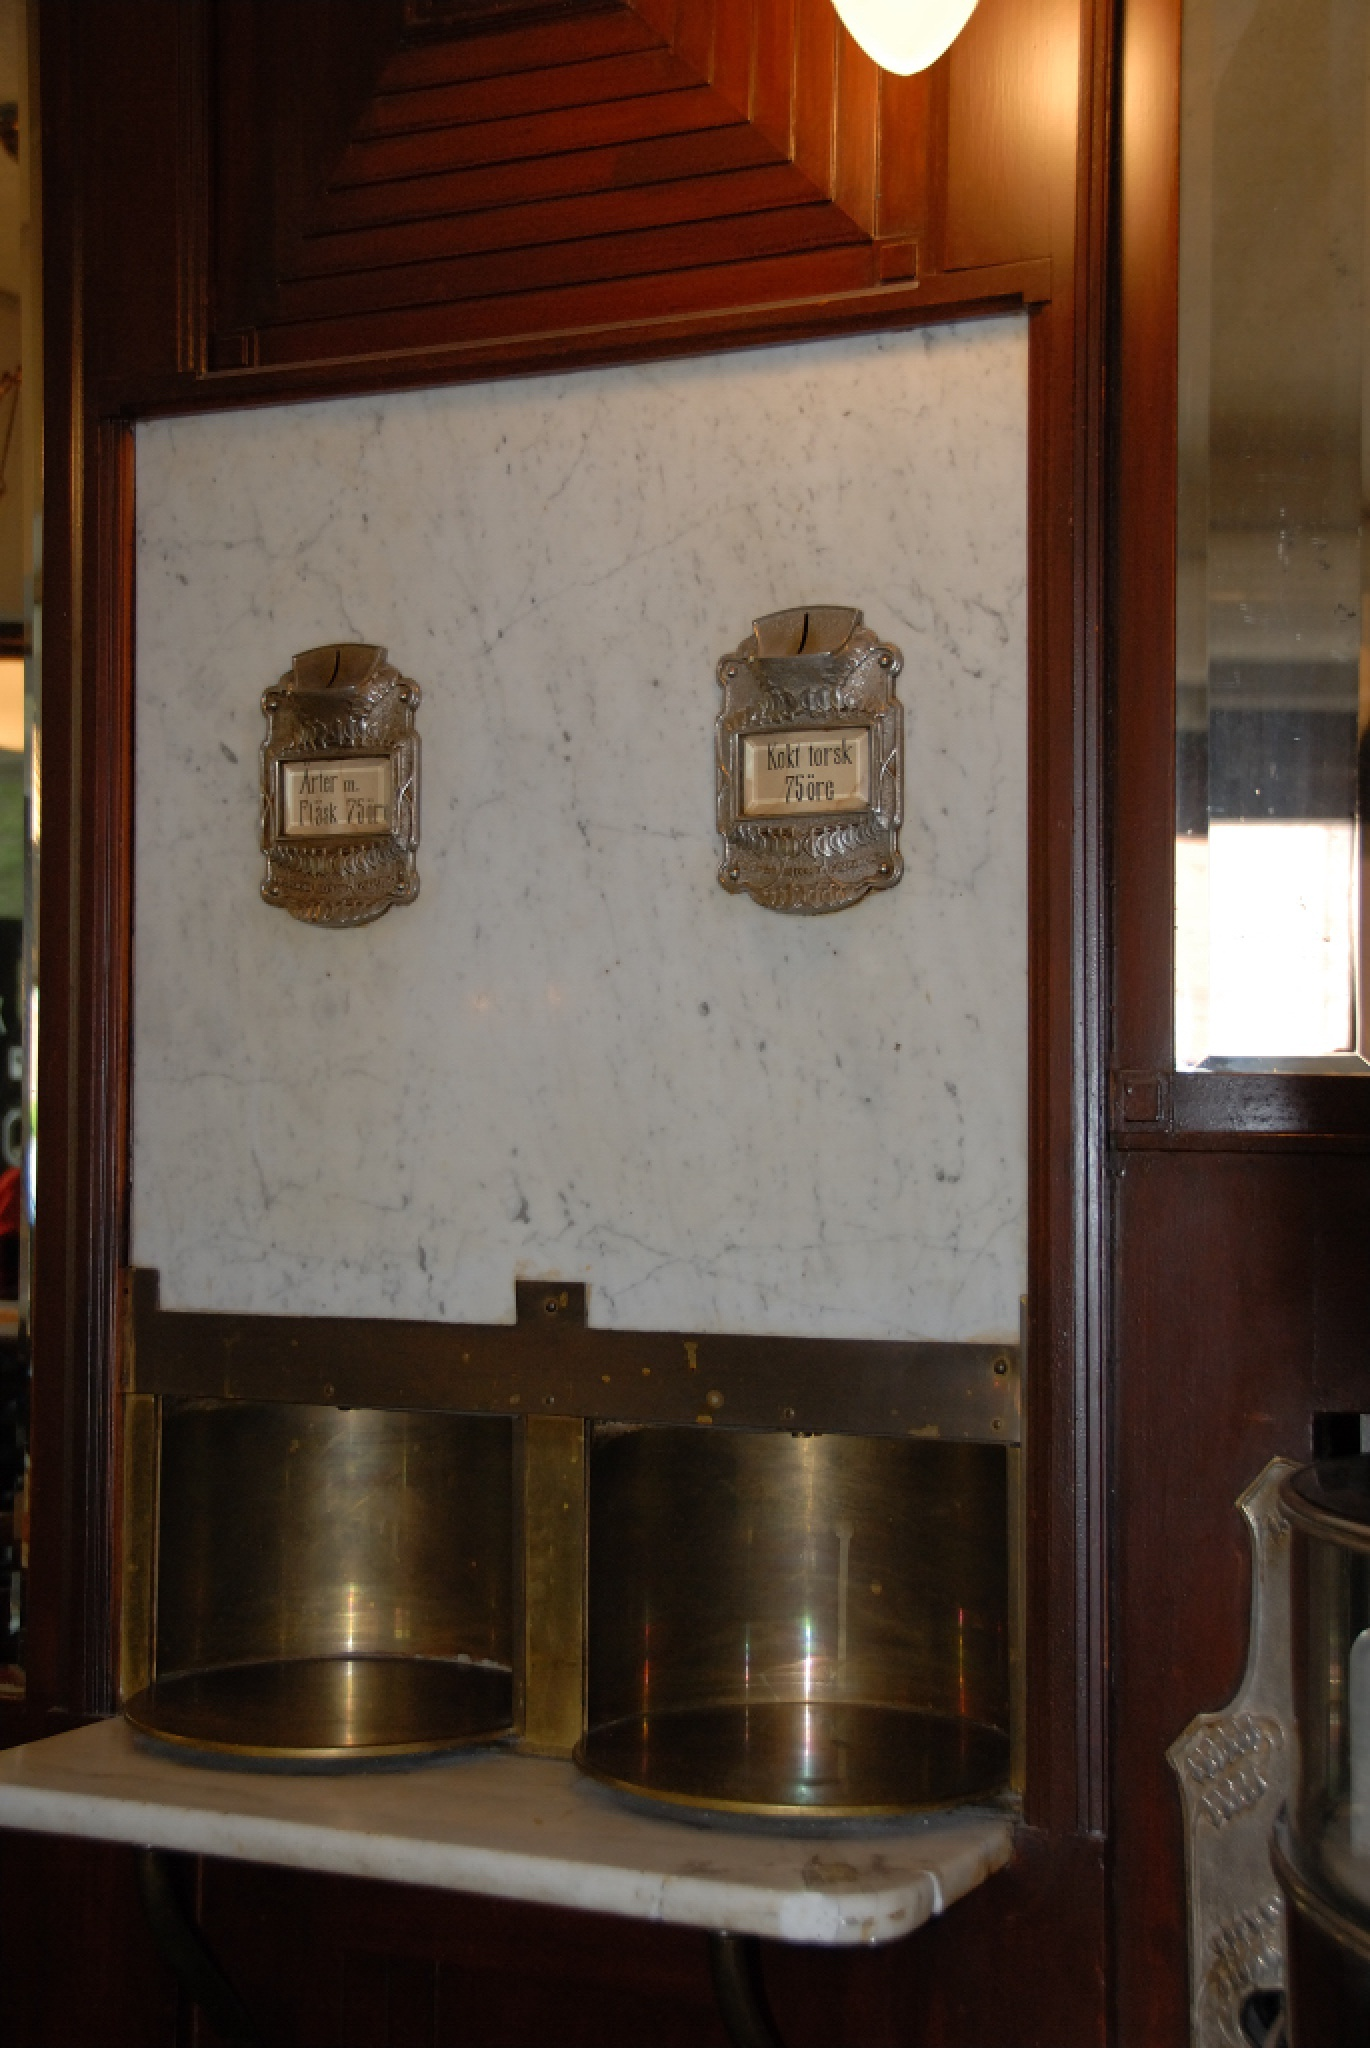 Malmo Museum - Antique Automated Drink Dispenser by escargo2k